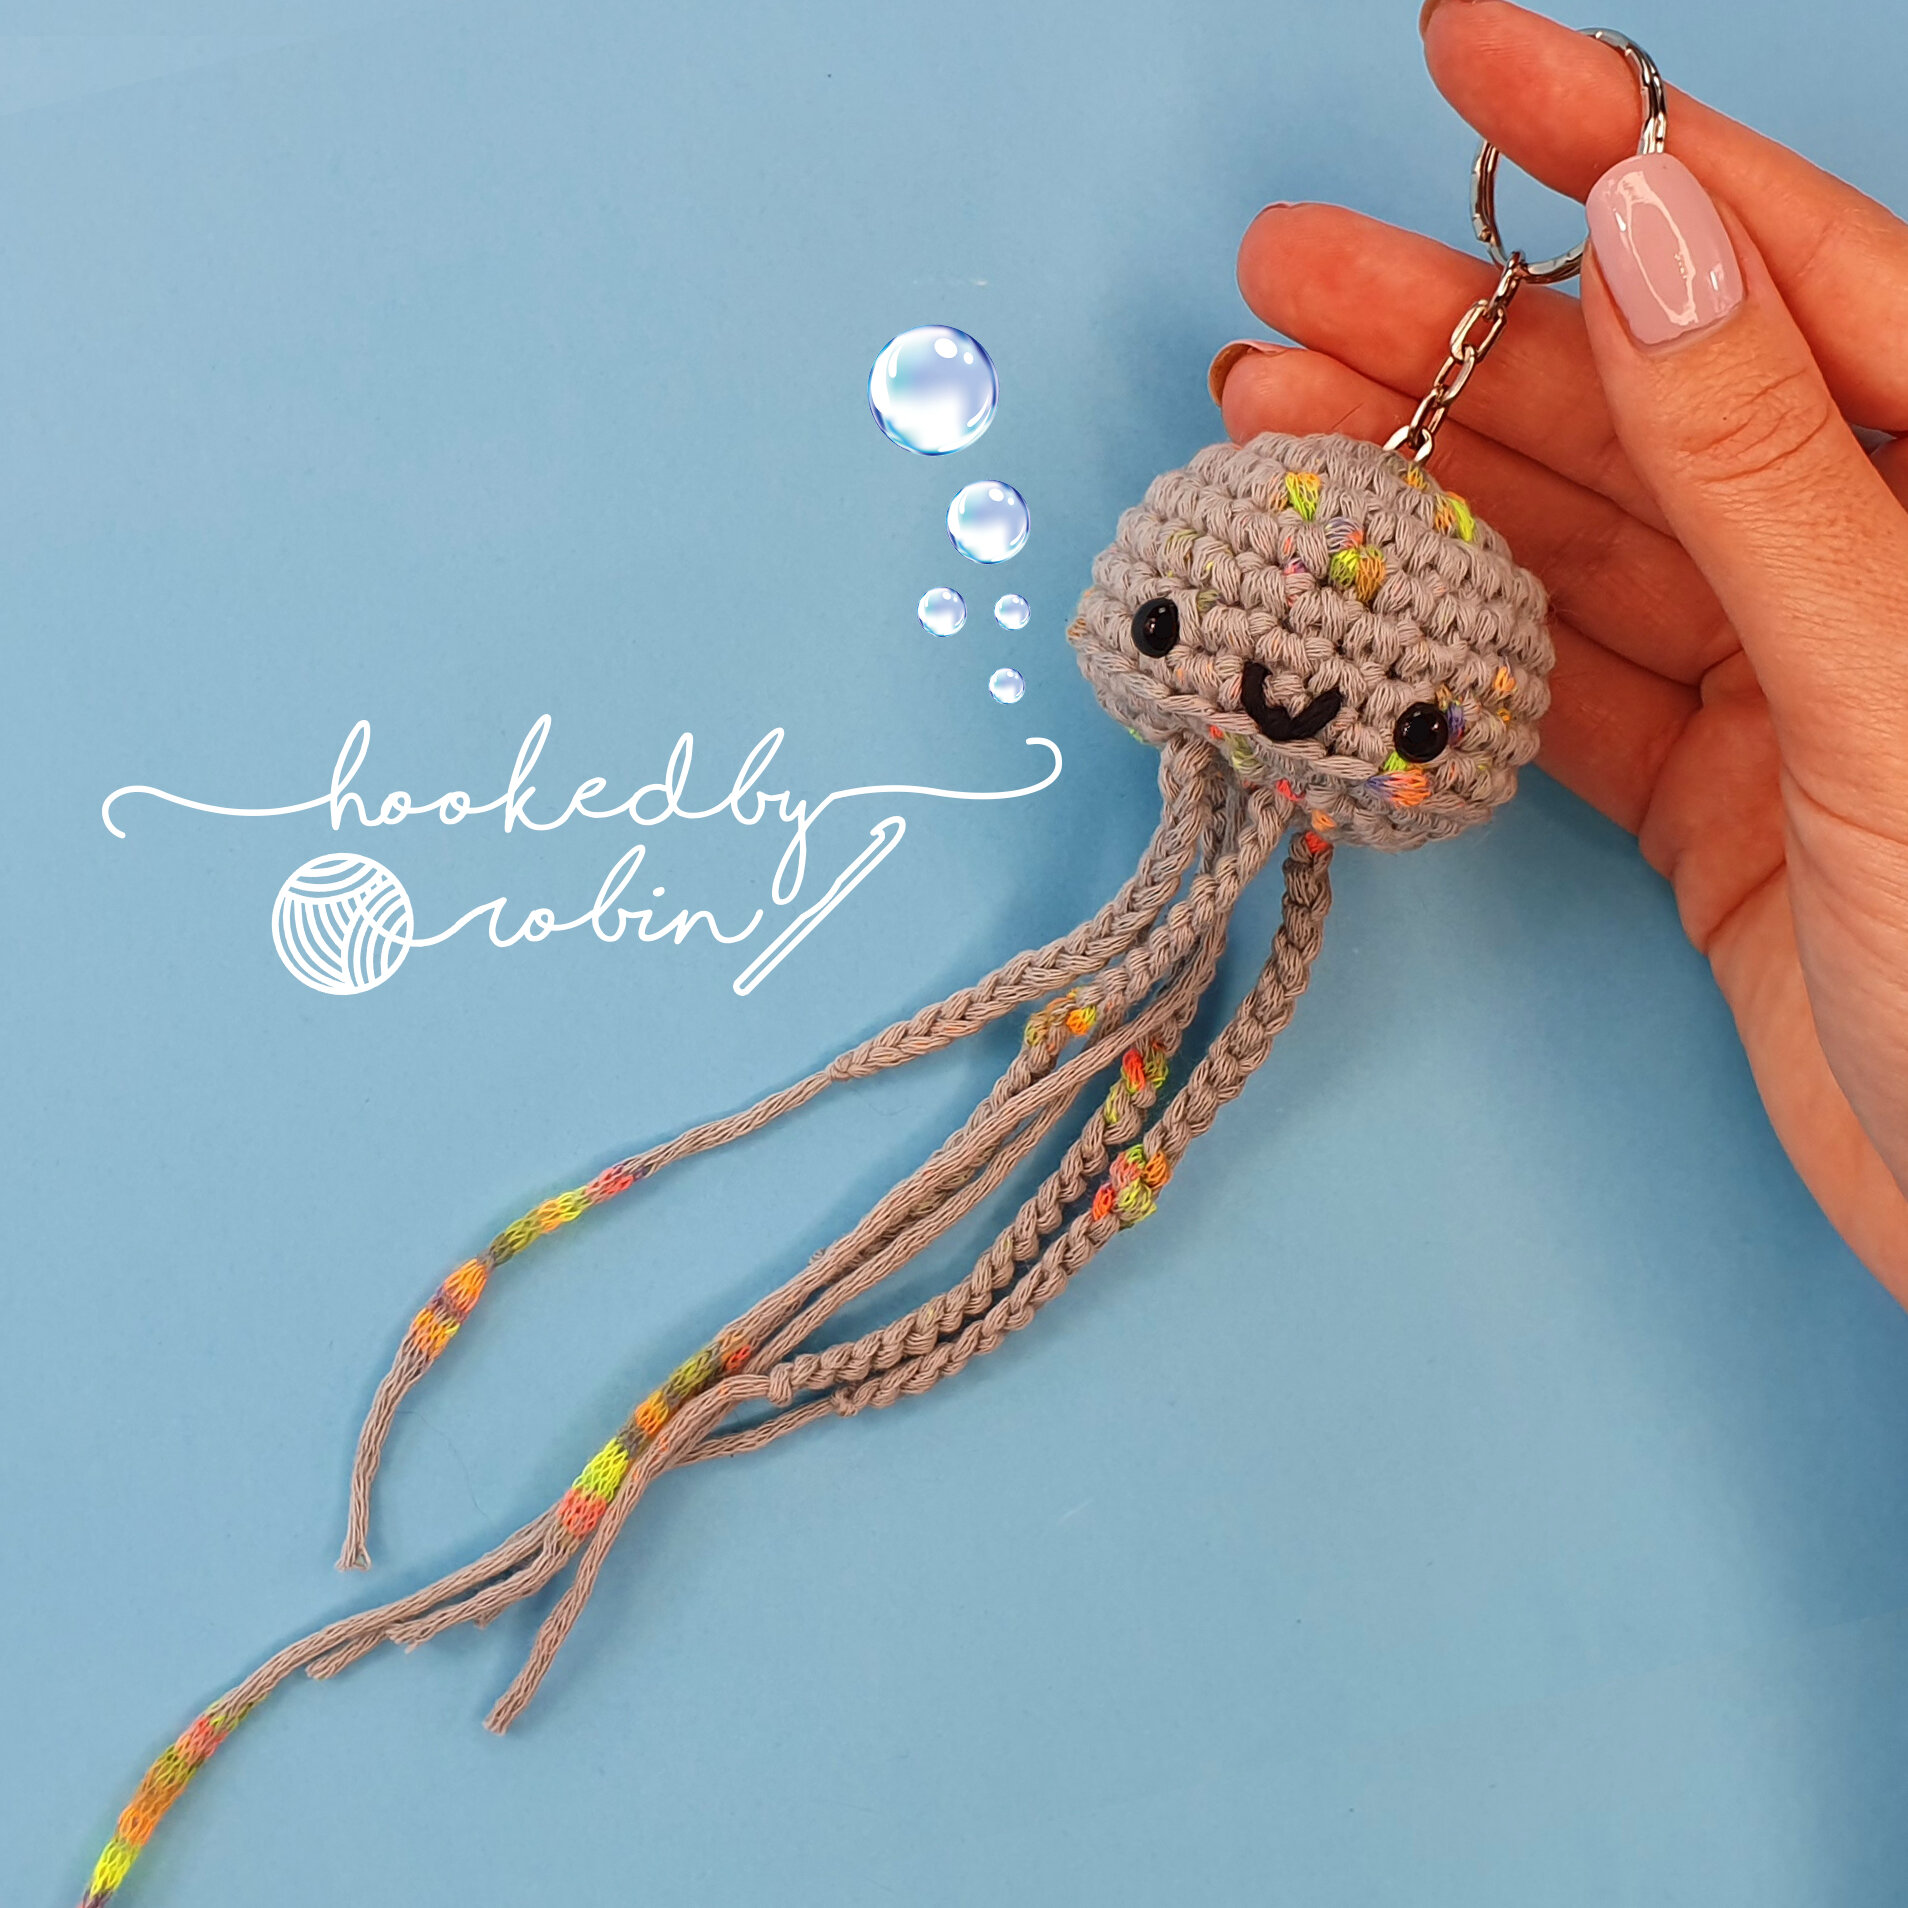 Happy jellyfish amigurumi pattern - Amigurumi Today | 1000x1000